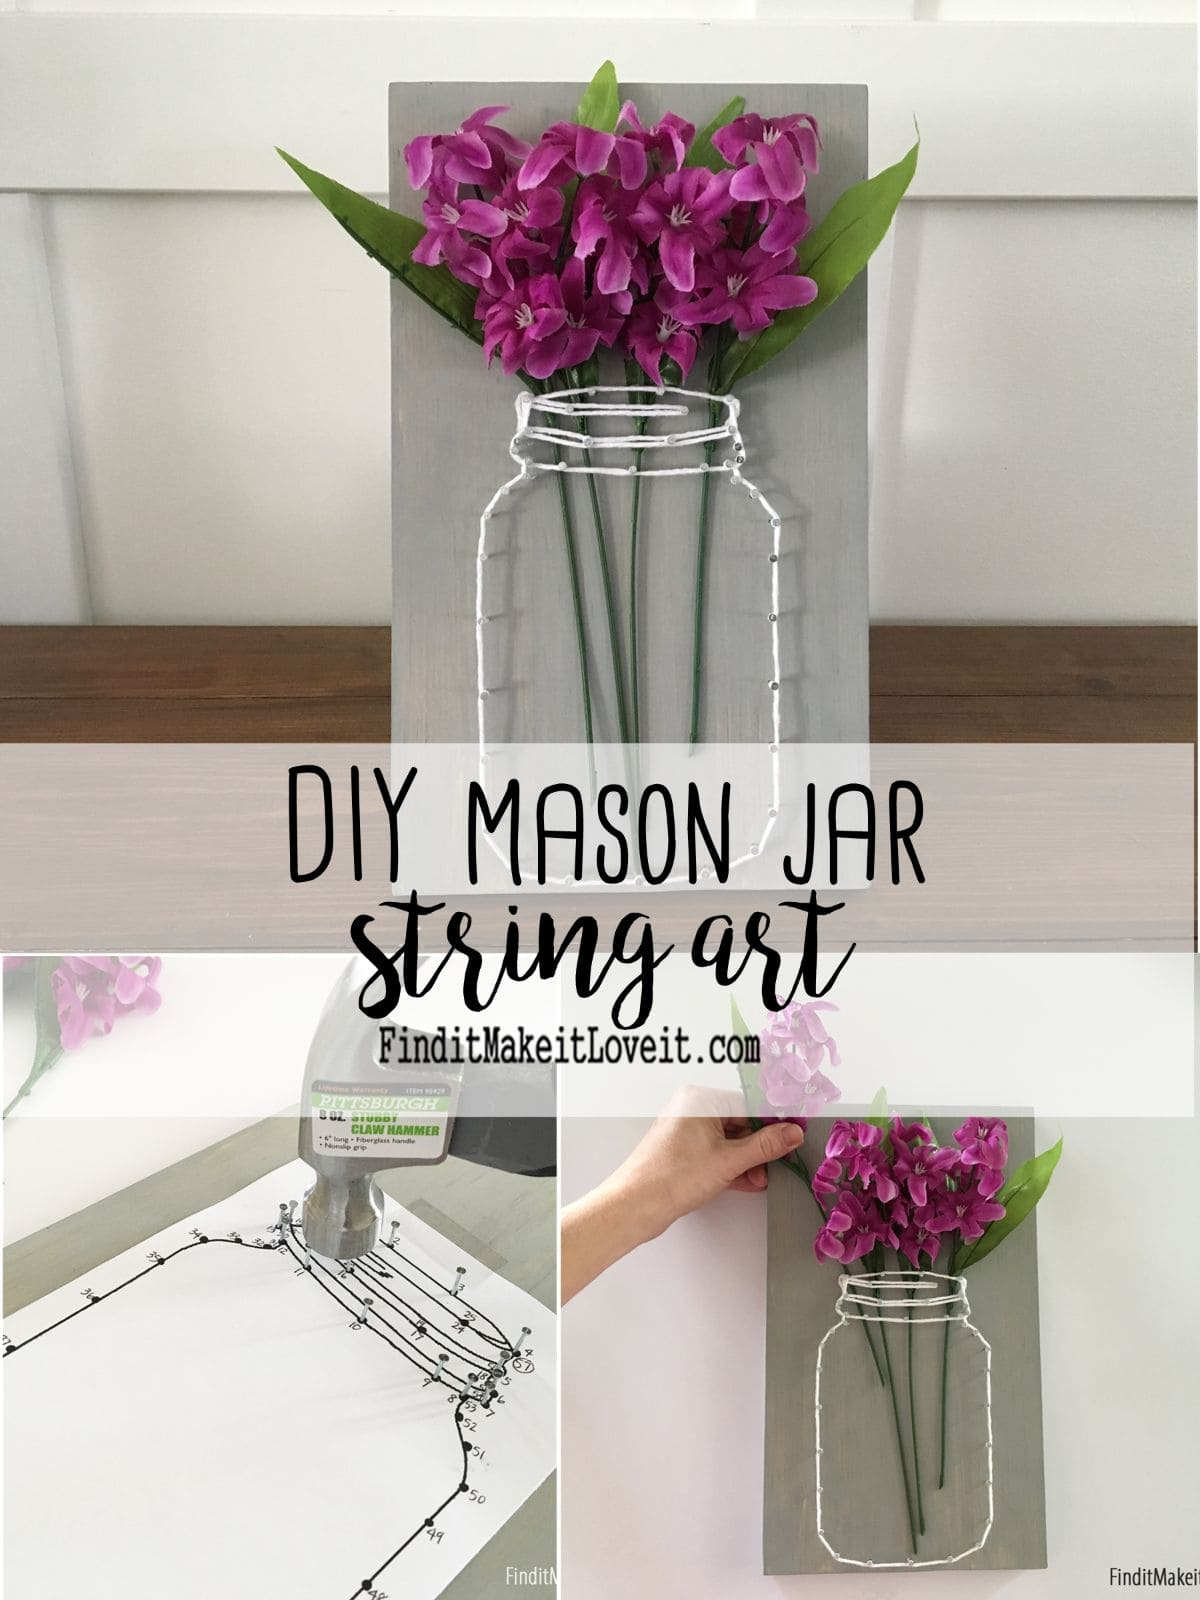 On a pale wooden board a mason jar has been plotted out in string with pink flowers coming out of the top